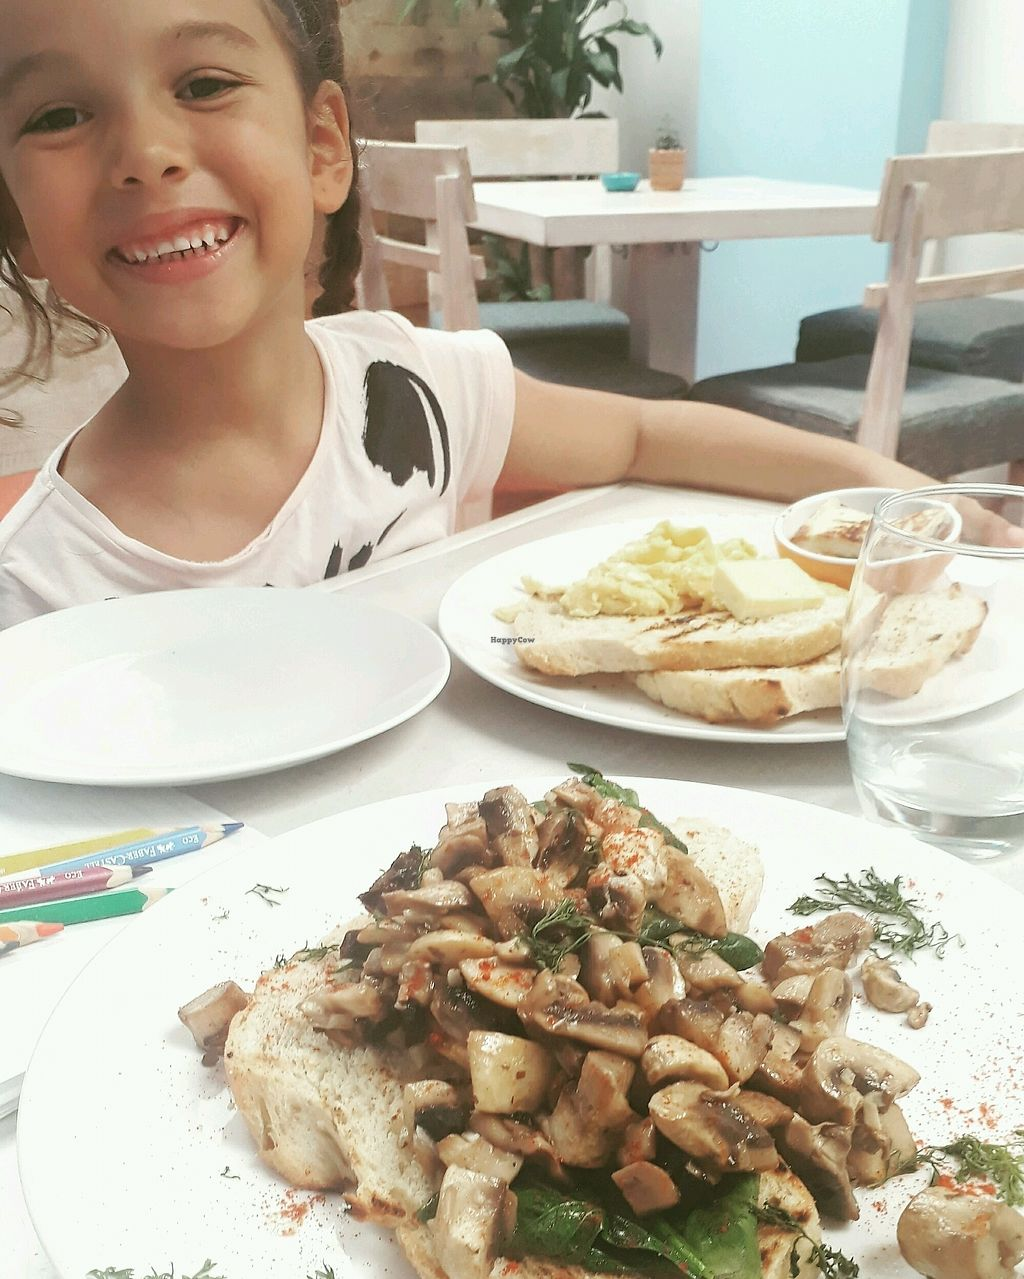 "Photo of Cafe Stepping Stone  by <a href=""/members/profile/1May"">1May</a> <br/>Happy breakfast!Sautéed mushrooms with spinach and homemade bread <br/> August 24, 2017  - <a href='/contact/abuse/image/97416/296630'>Report</a>"